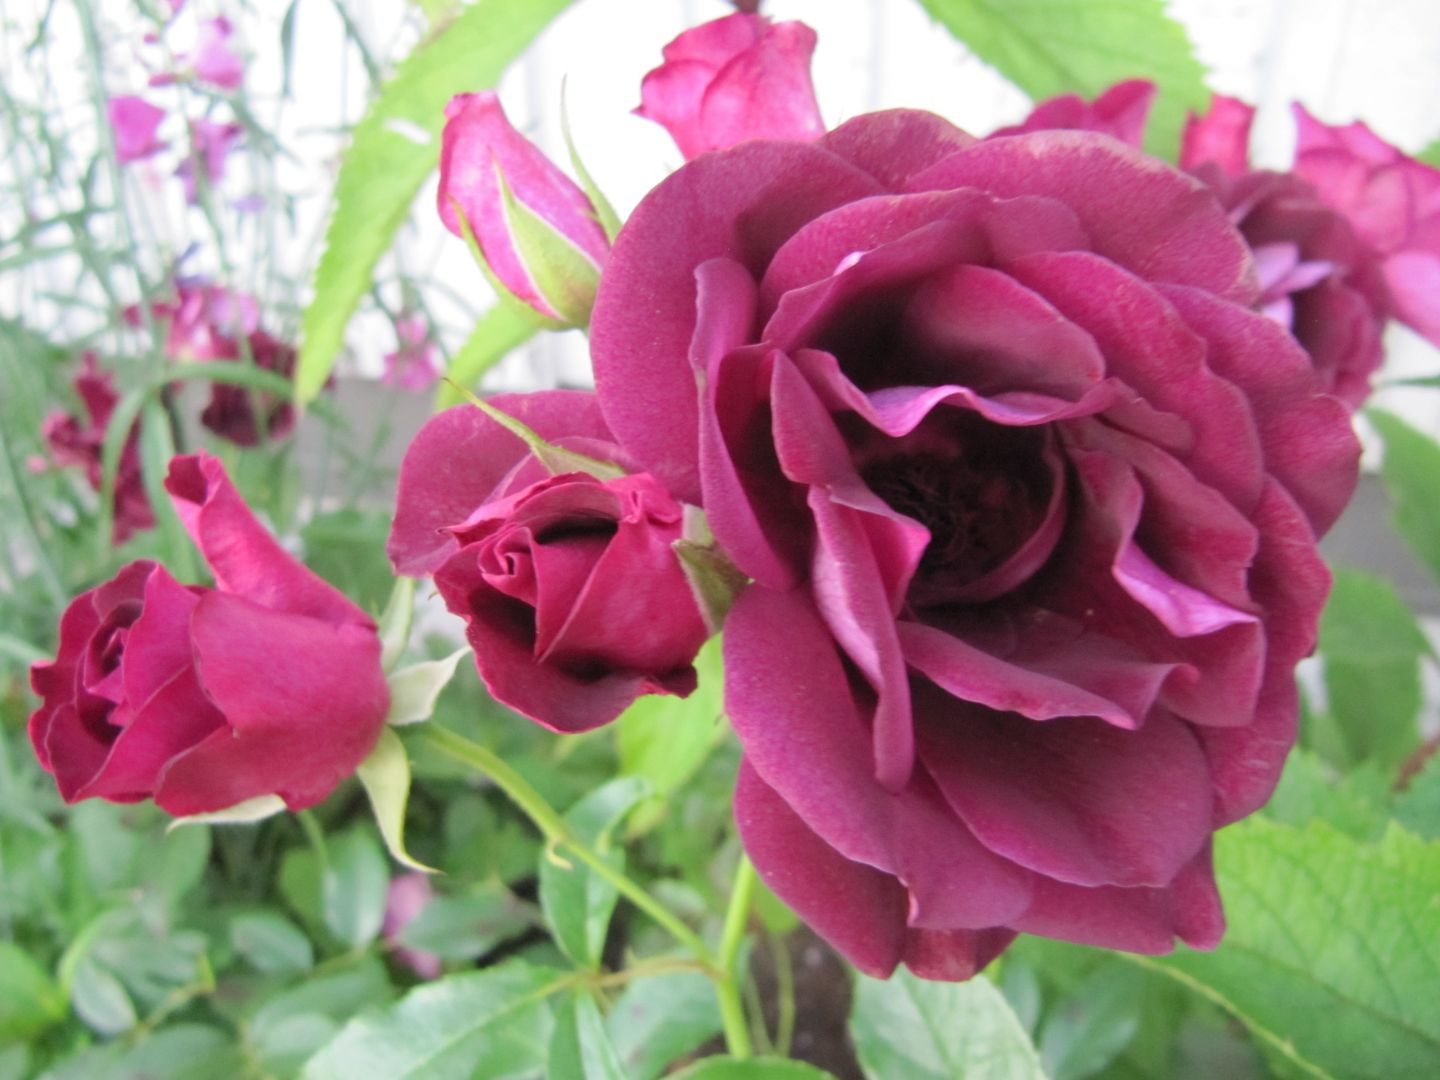 Rosa - Rhapsody in Blue - Ros